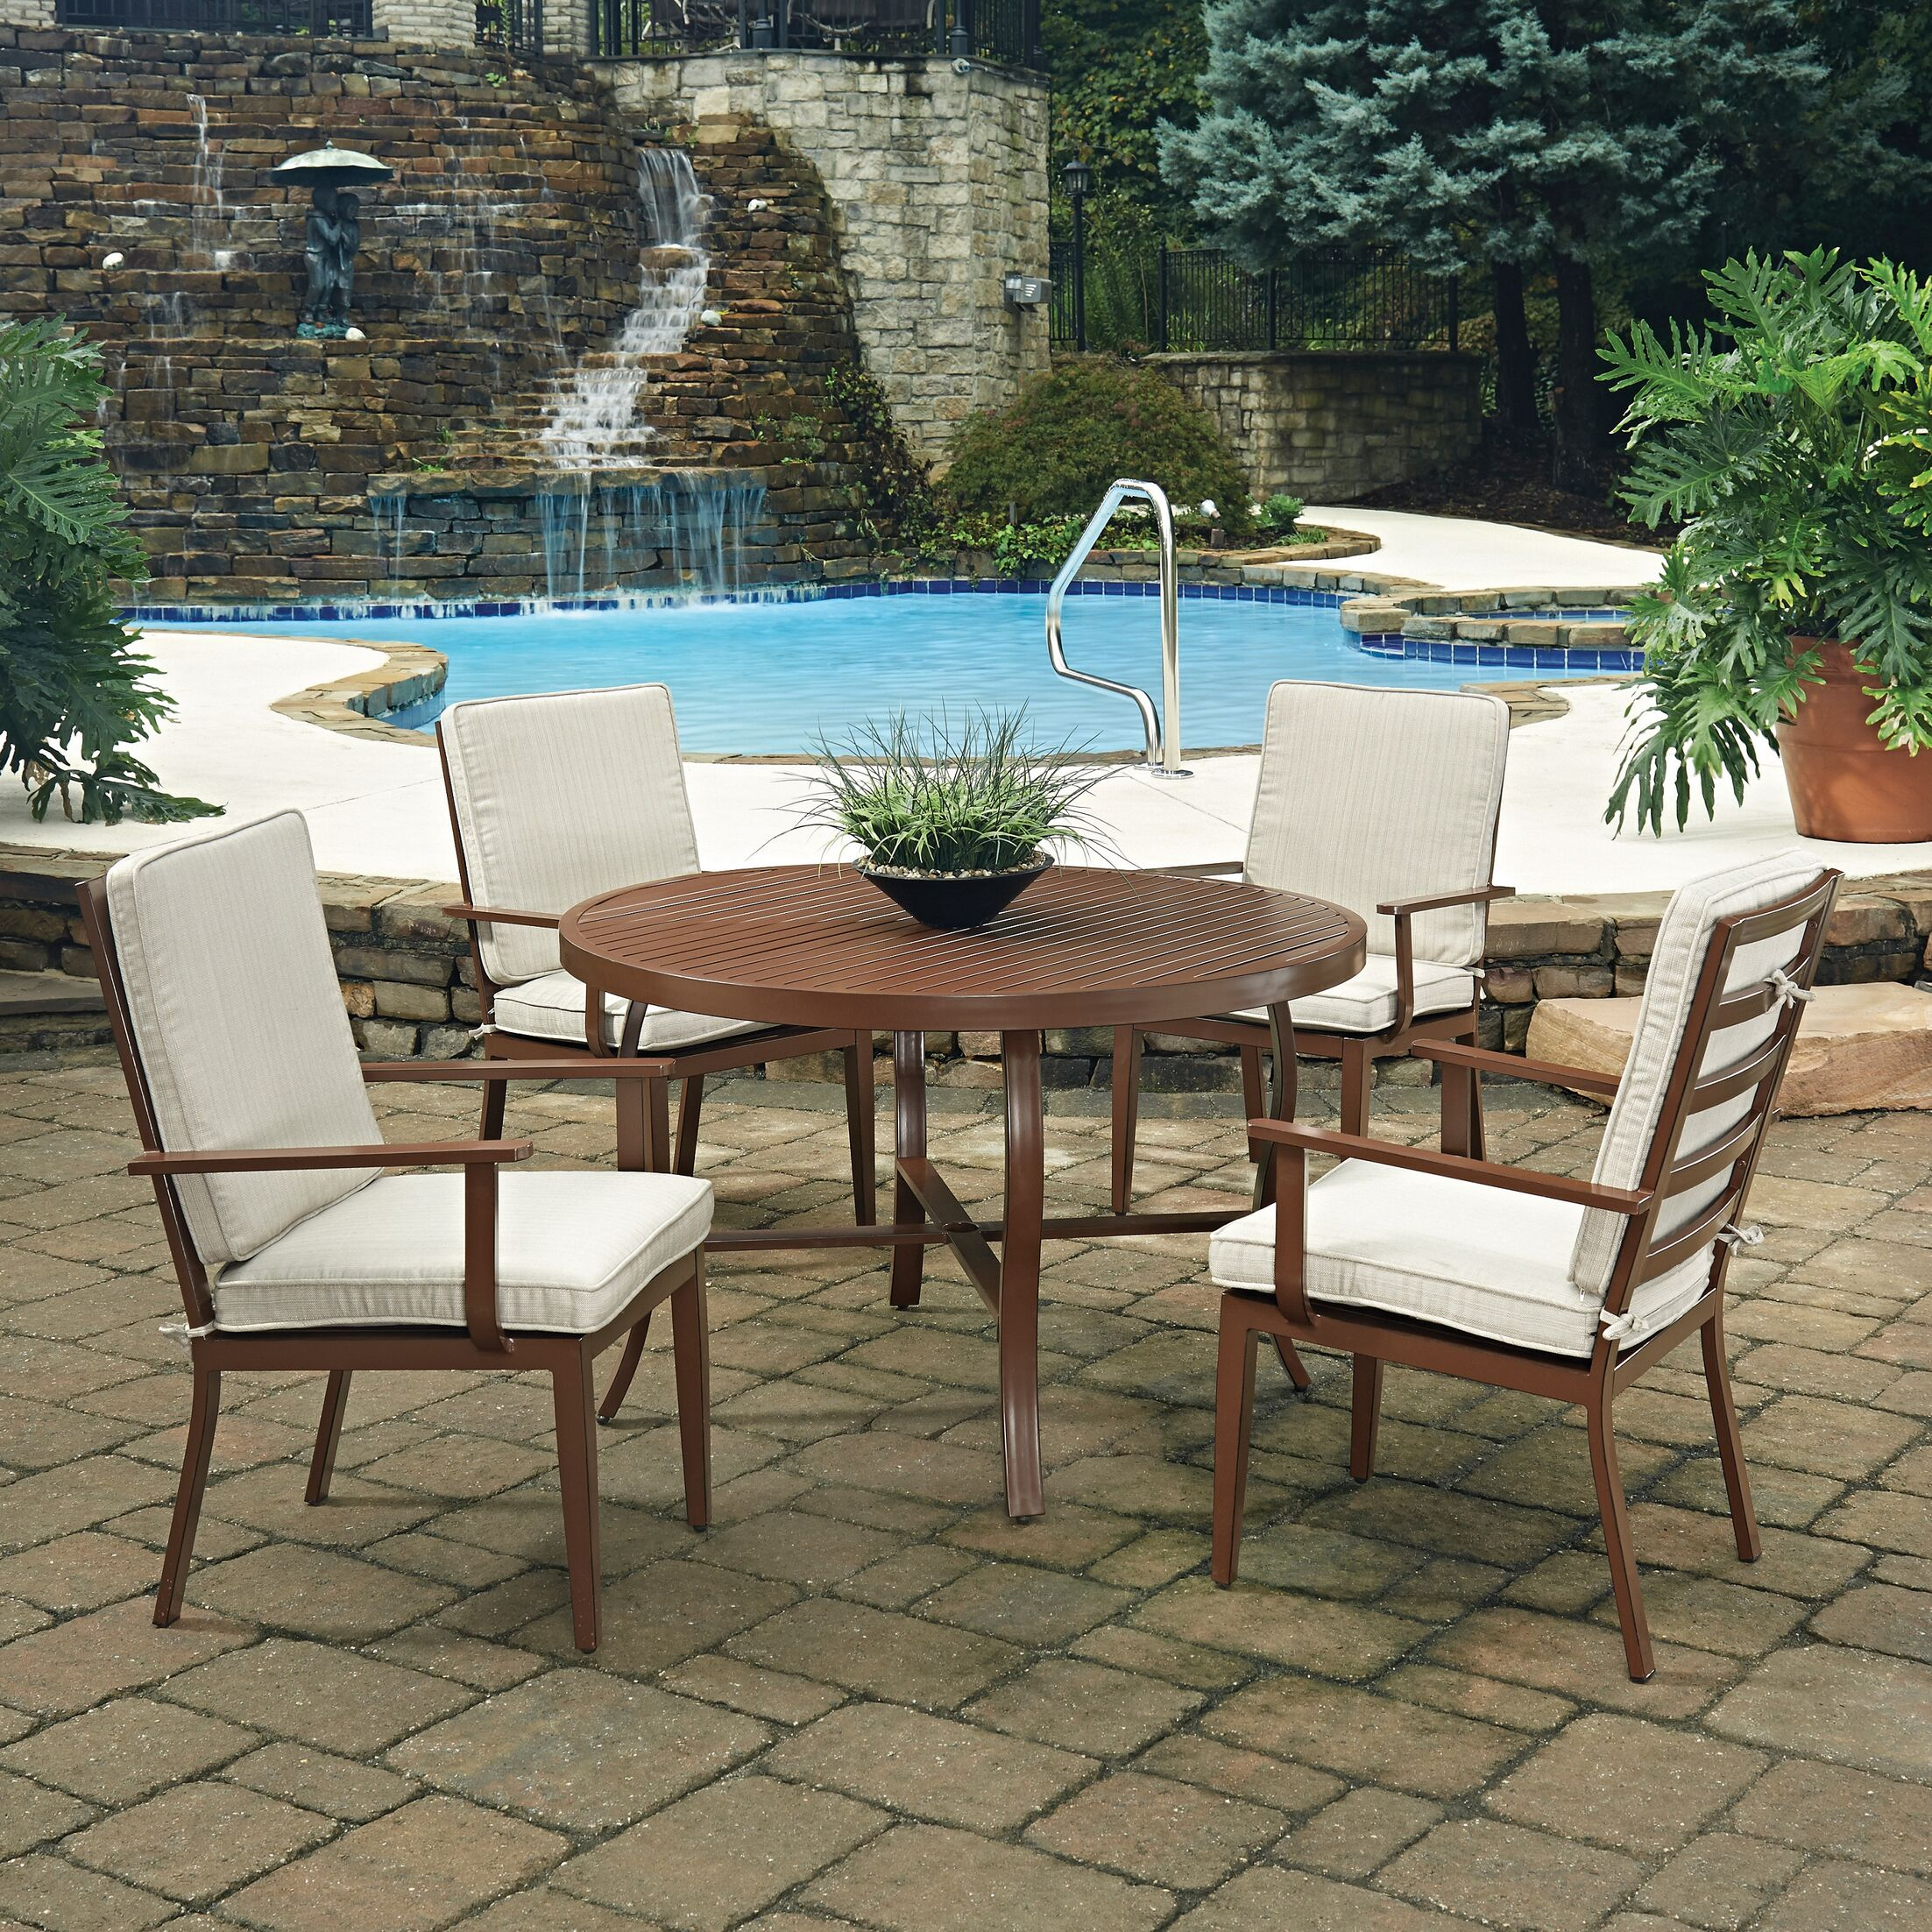 Key West 5 Piece Dining Set with Cushion Table Size: 48